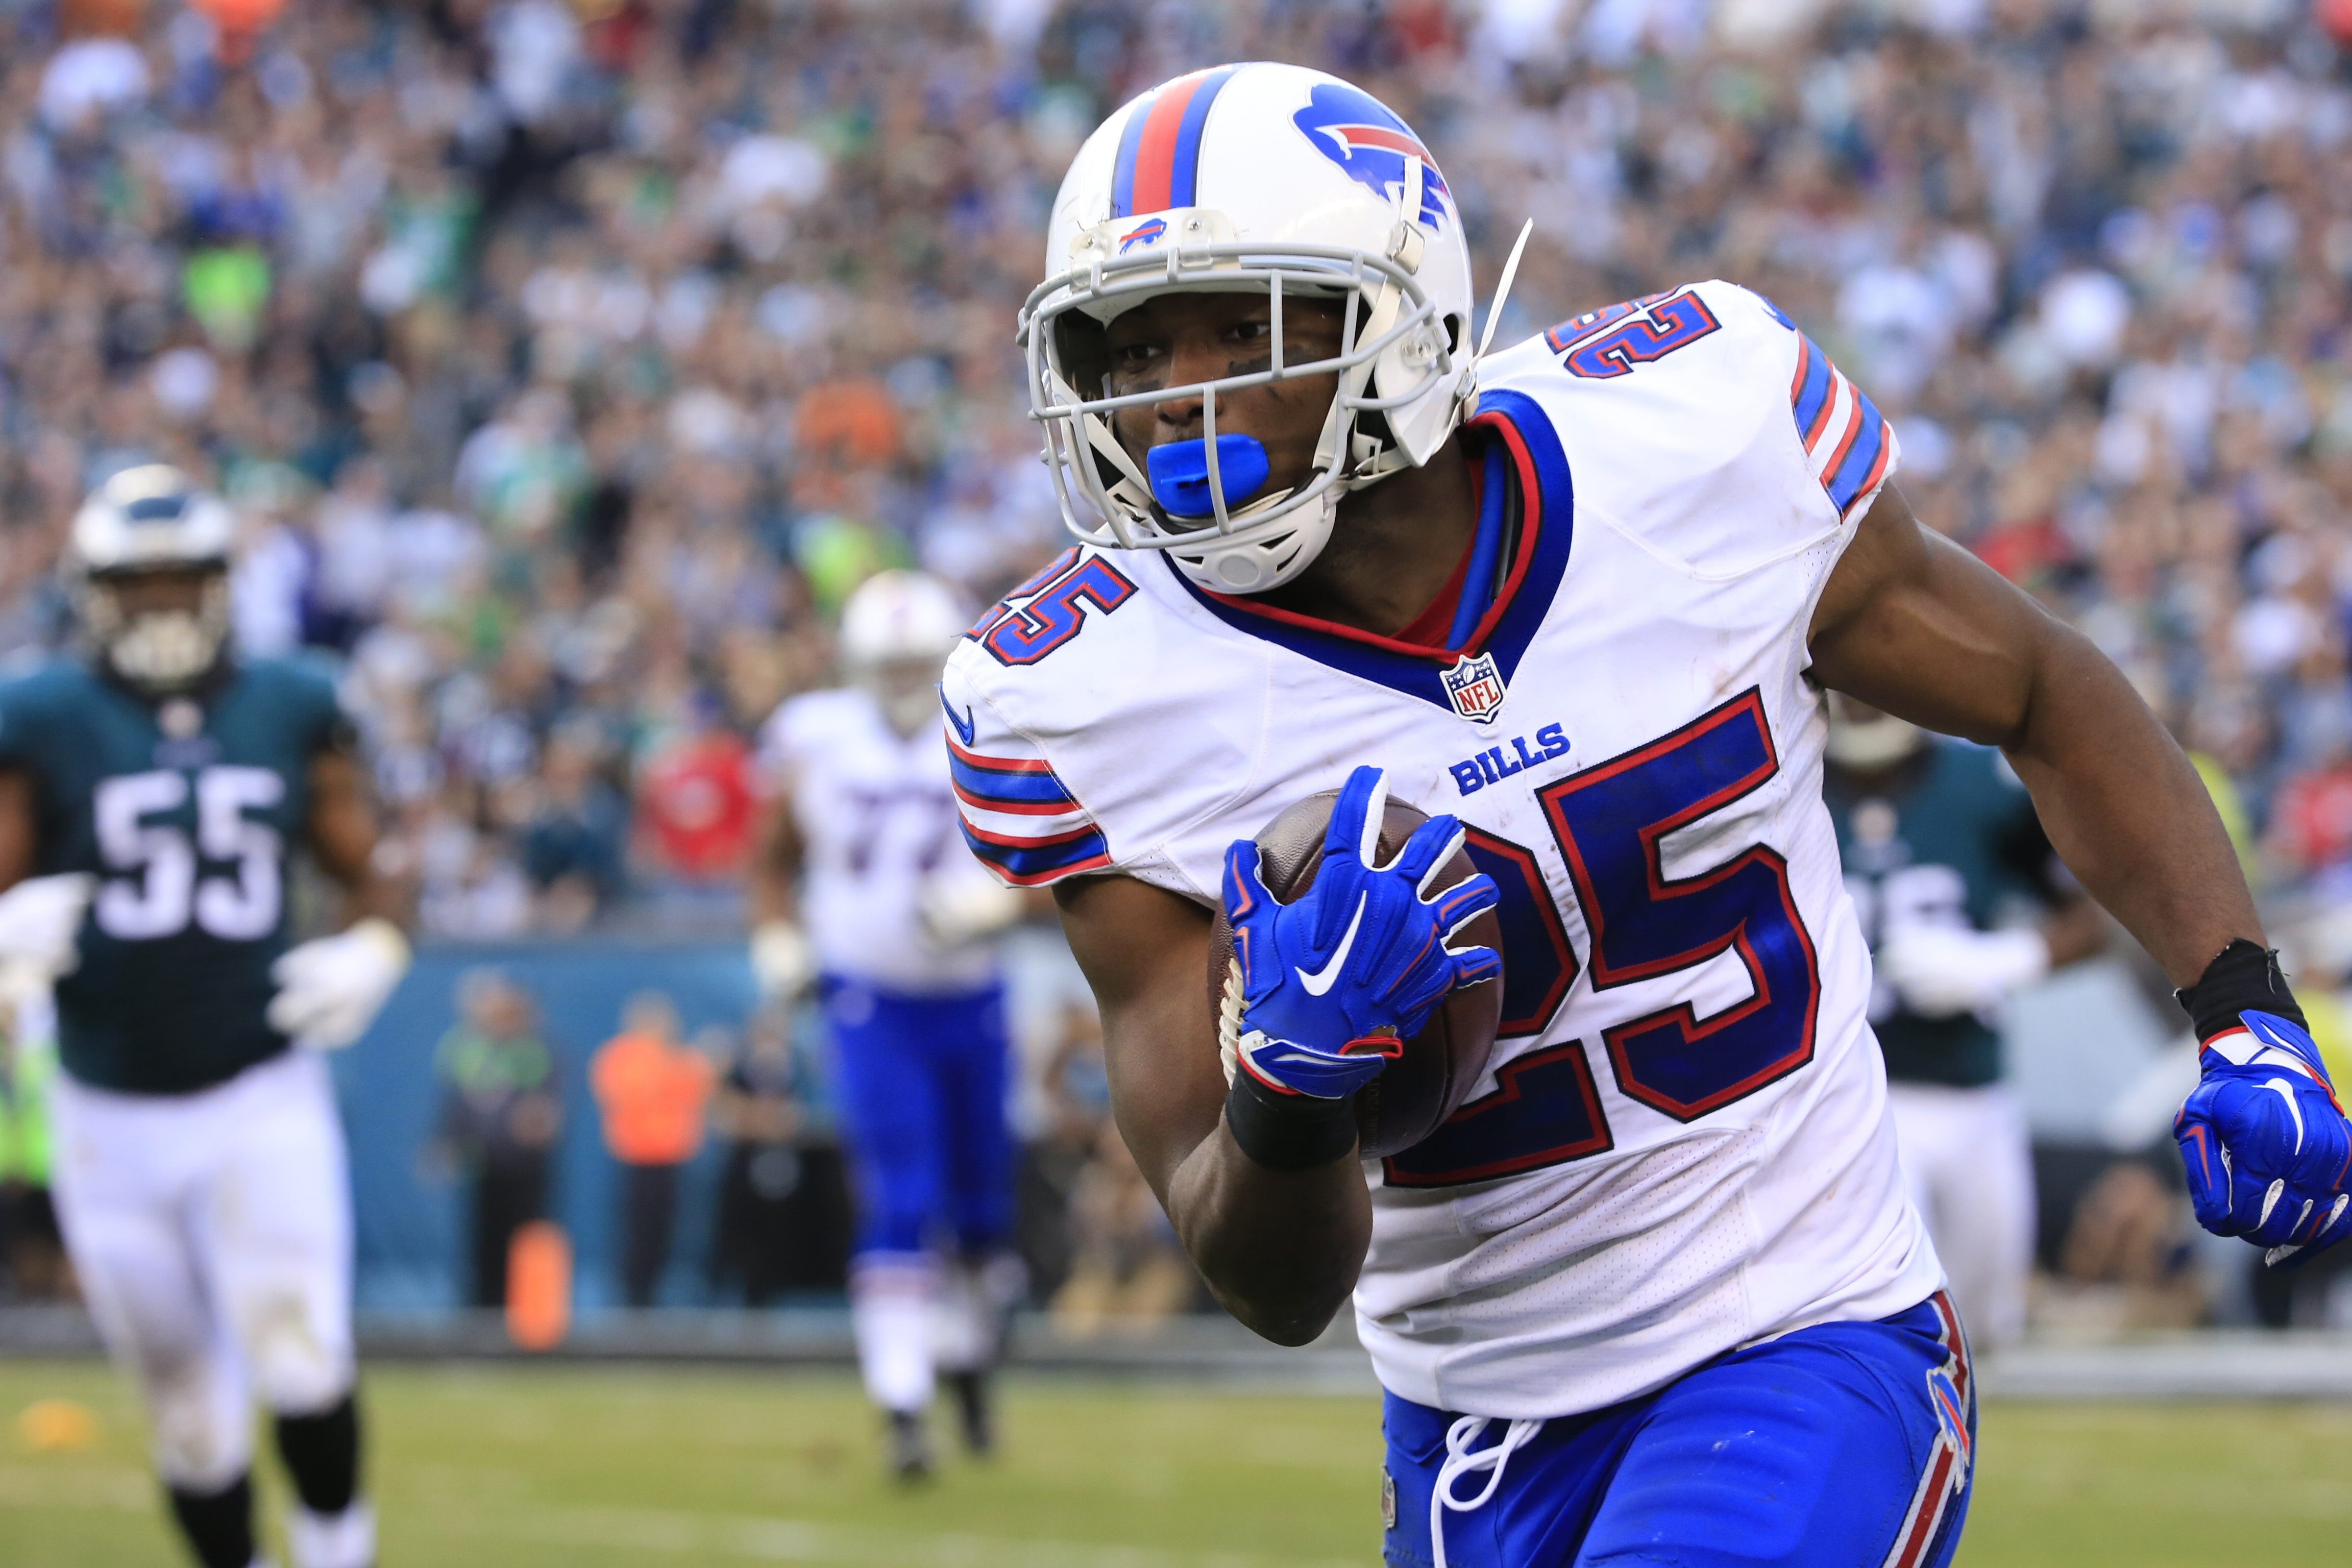 Buffalo Bills LeSean McCoy will not miss any games due to his involvement in a nightclub brawl.